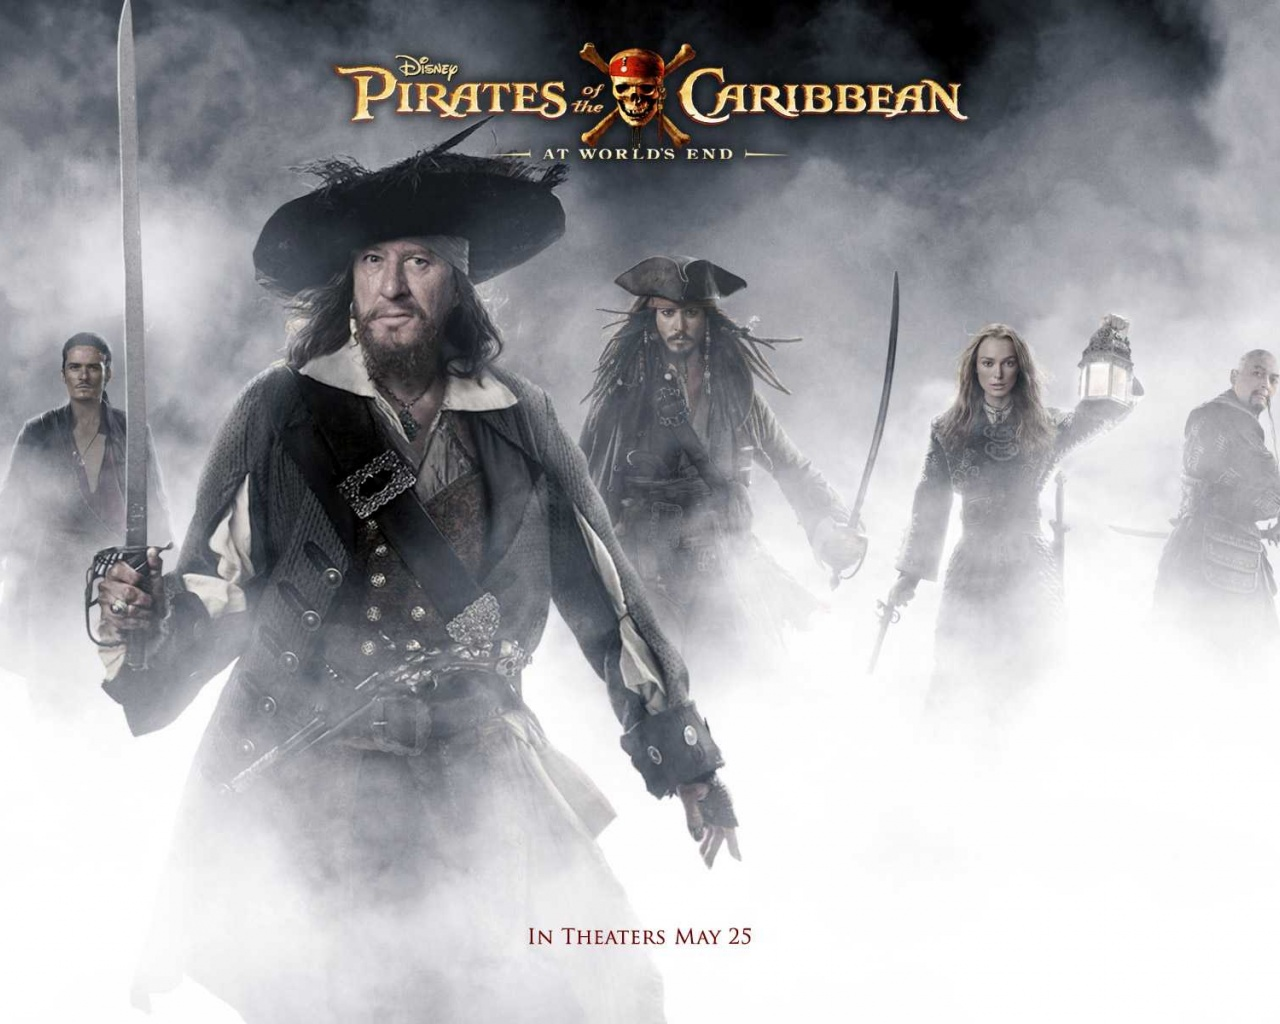 1280x1024 Pirates Of The Caribbean Worlds Animated Photo